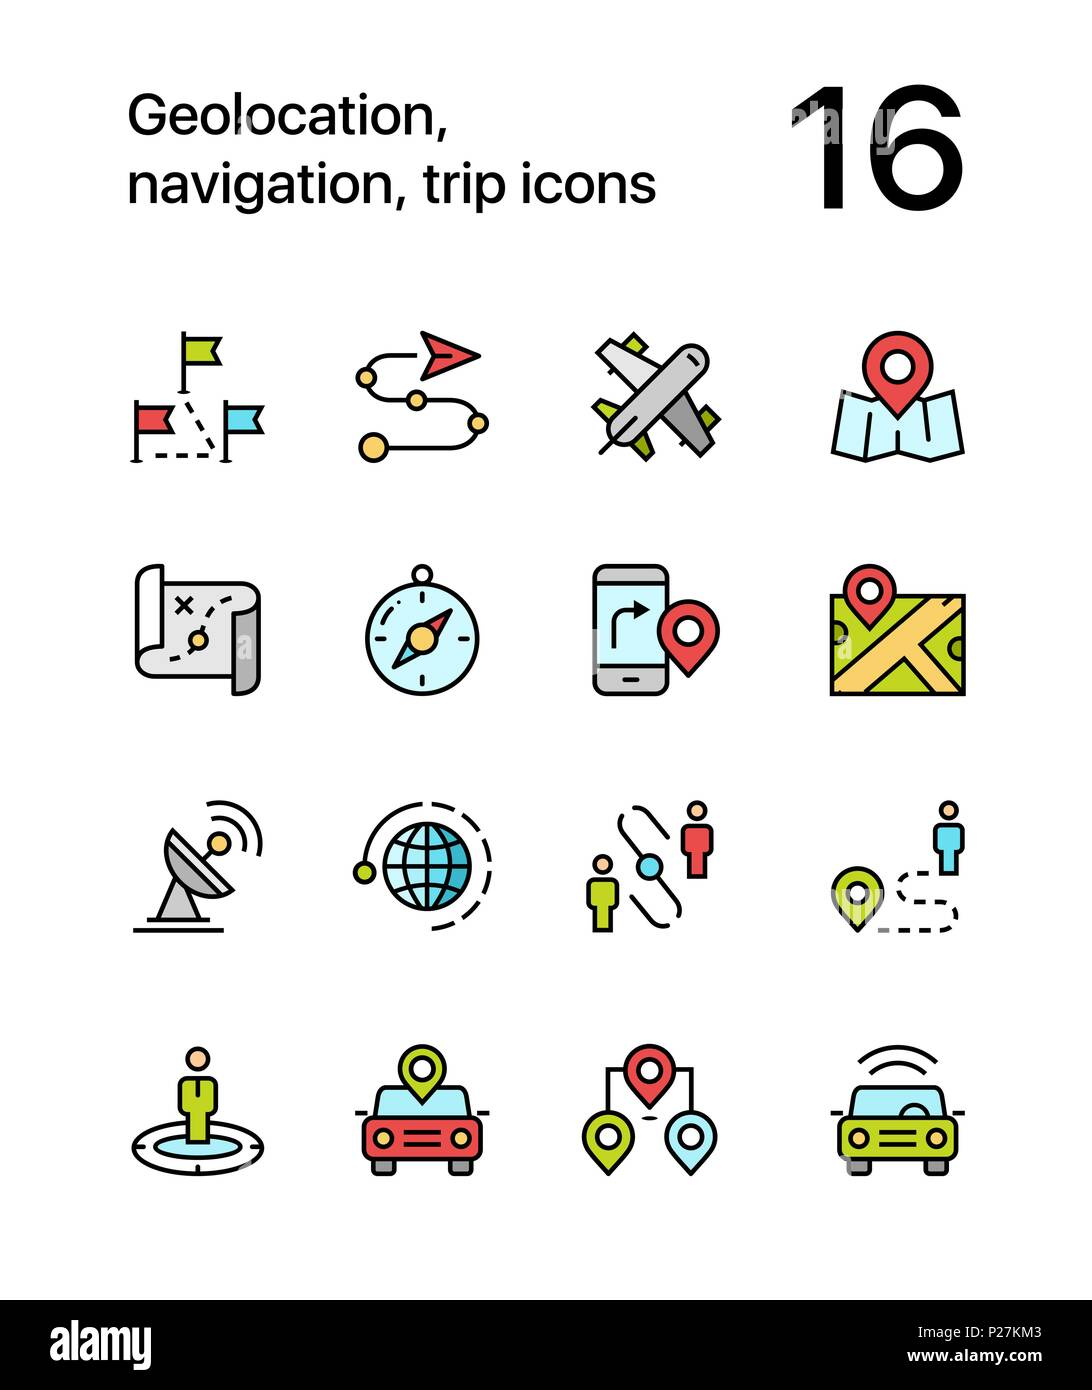 Colored Geolocation, navigation, trip icons for web and mobile design pack 3 - Stock Vector